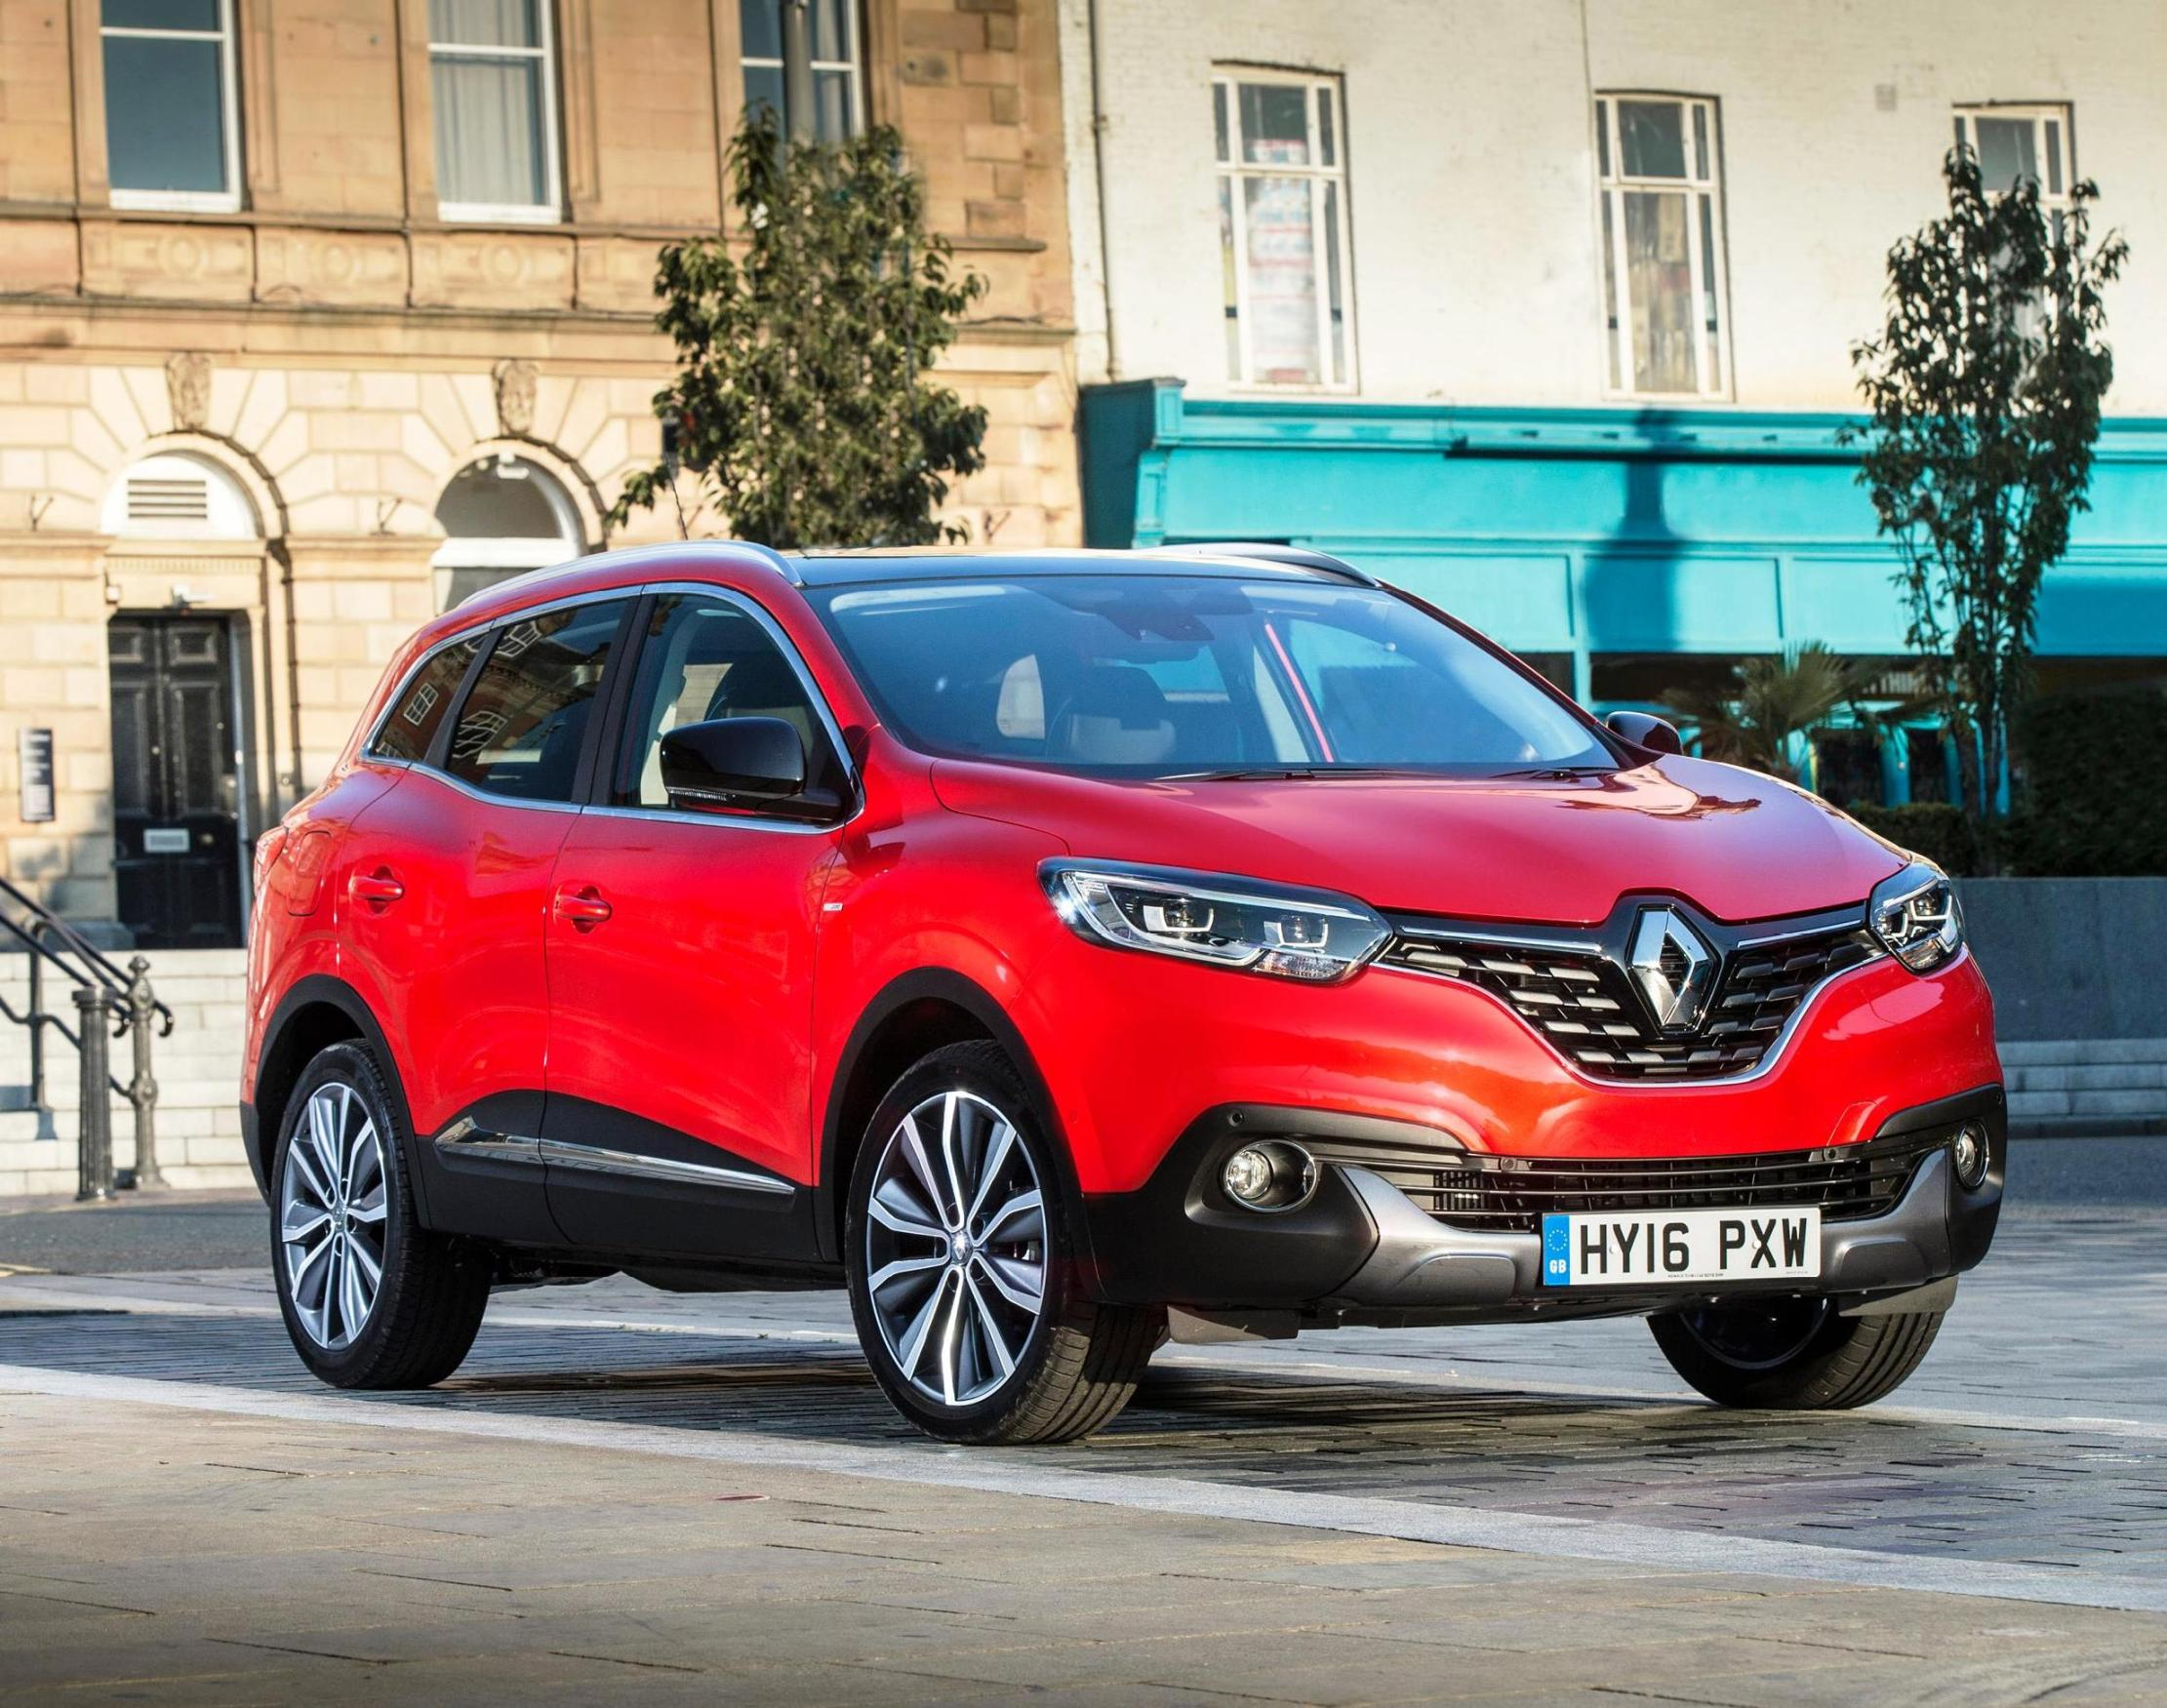 renault kadjar signature s nav tce 165 1 6 petrol road test wheels alive. Black Bedroom Furniture Sets. Home Design Ideas